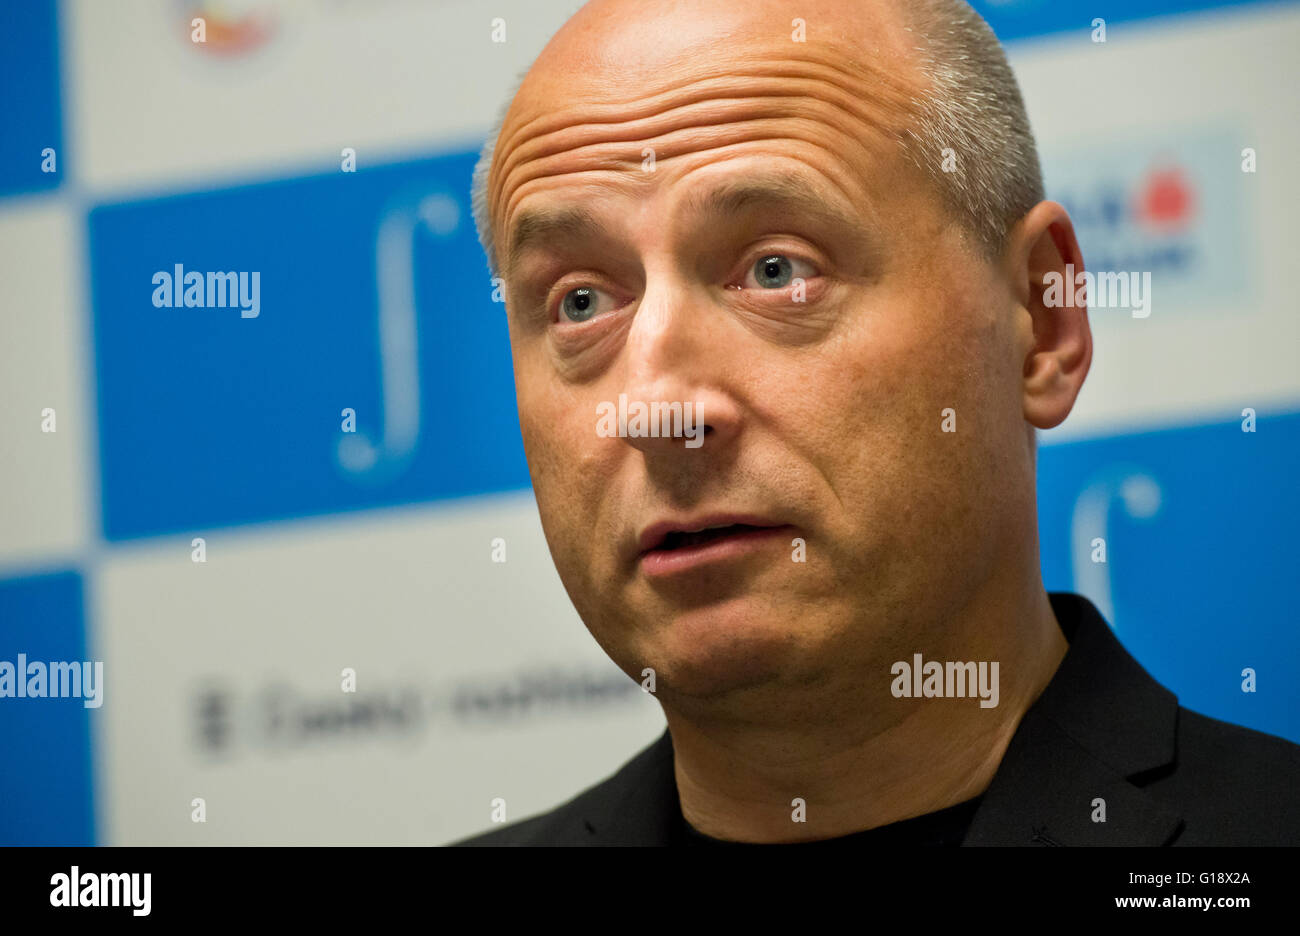 Prague, Czech Republic. 11th May, 2016. Estonian conductor Paavo Jarvi speaks at a press conference prior to the - Stock Image